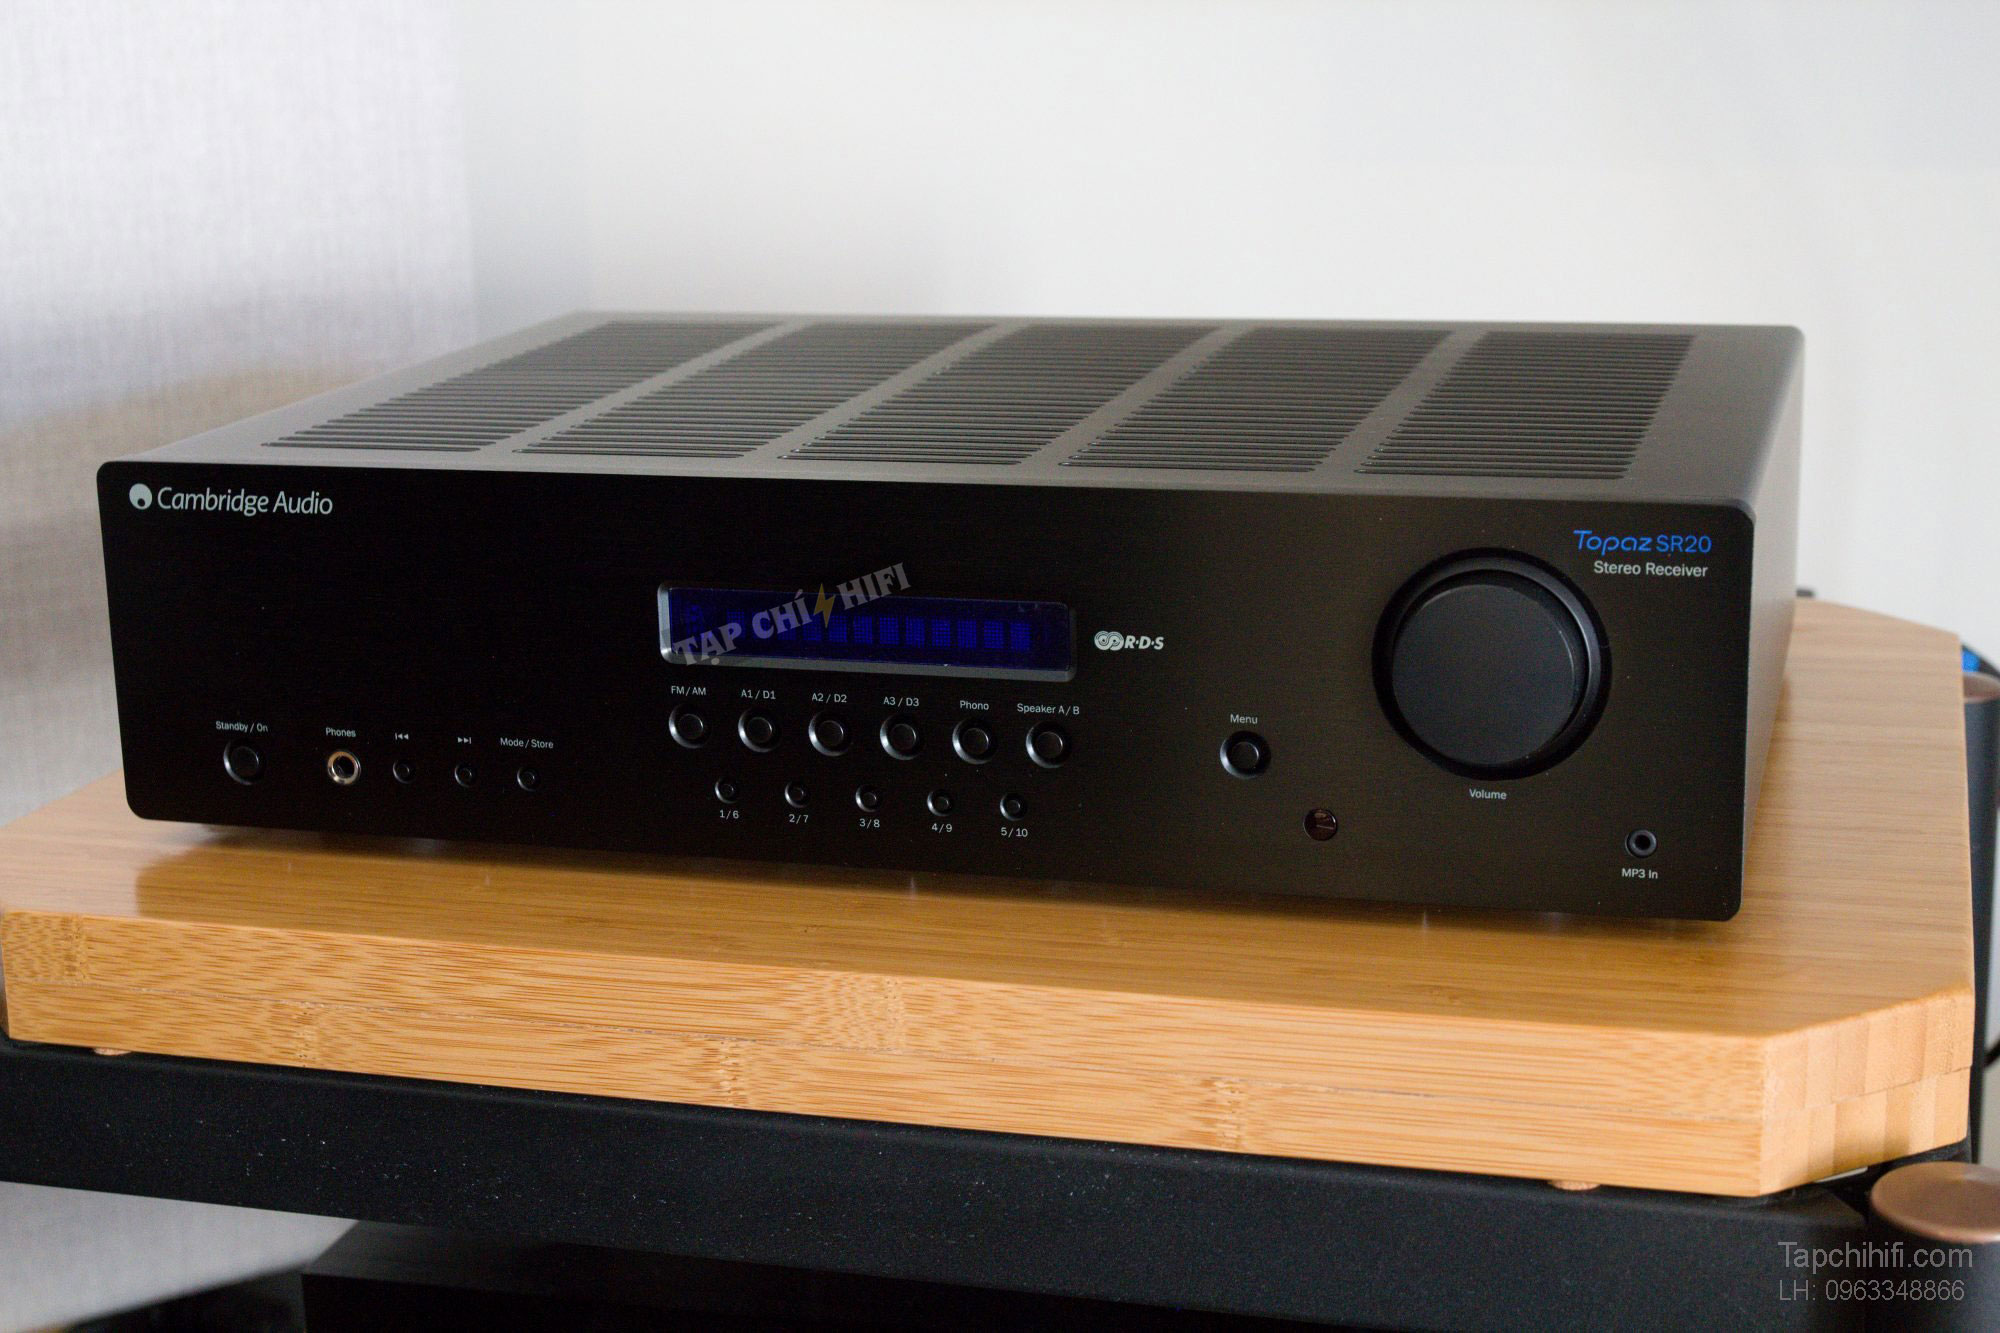 ampli Cambridge Topaz SR20 can canh